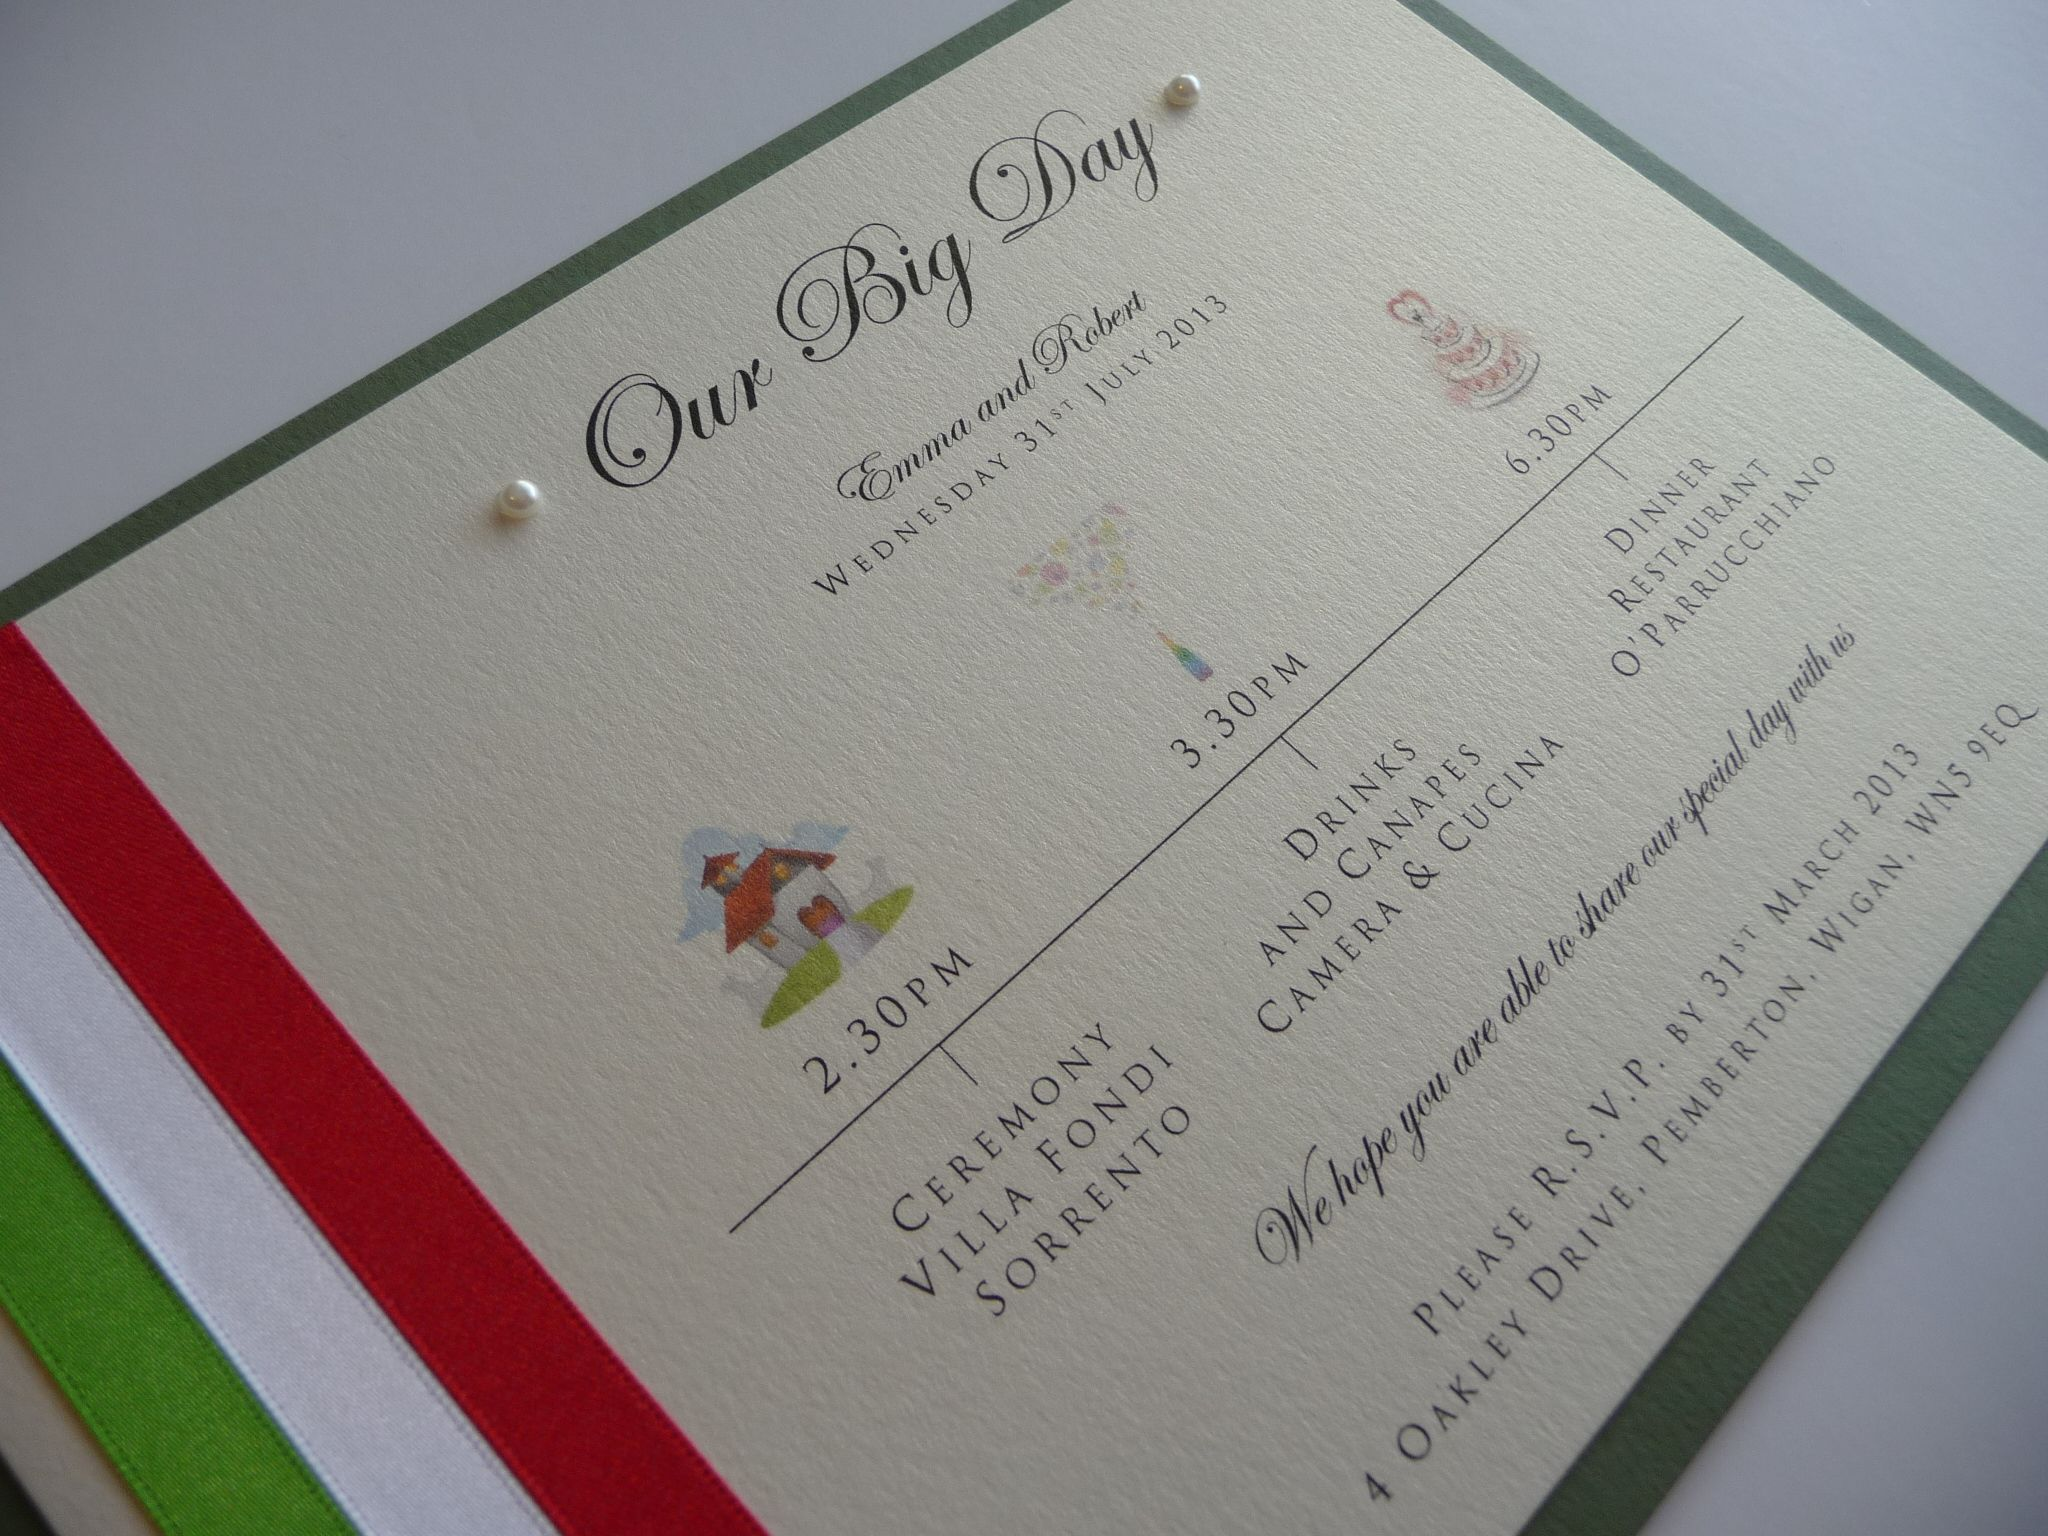 How Big Are Wedding Invitations: Our Big Day Style Wedding Invitations .. Italy Wedding